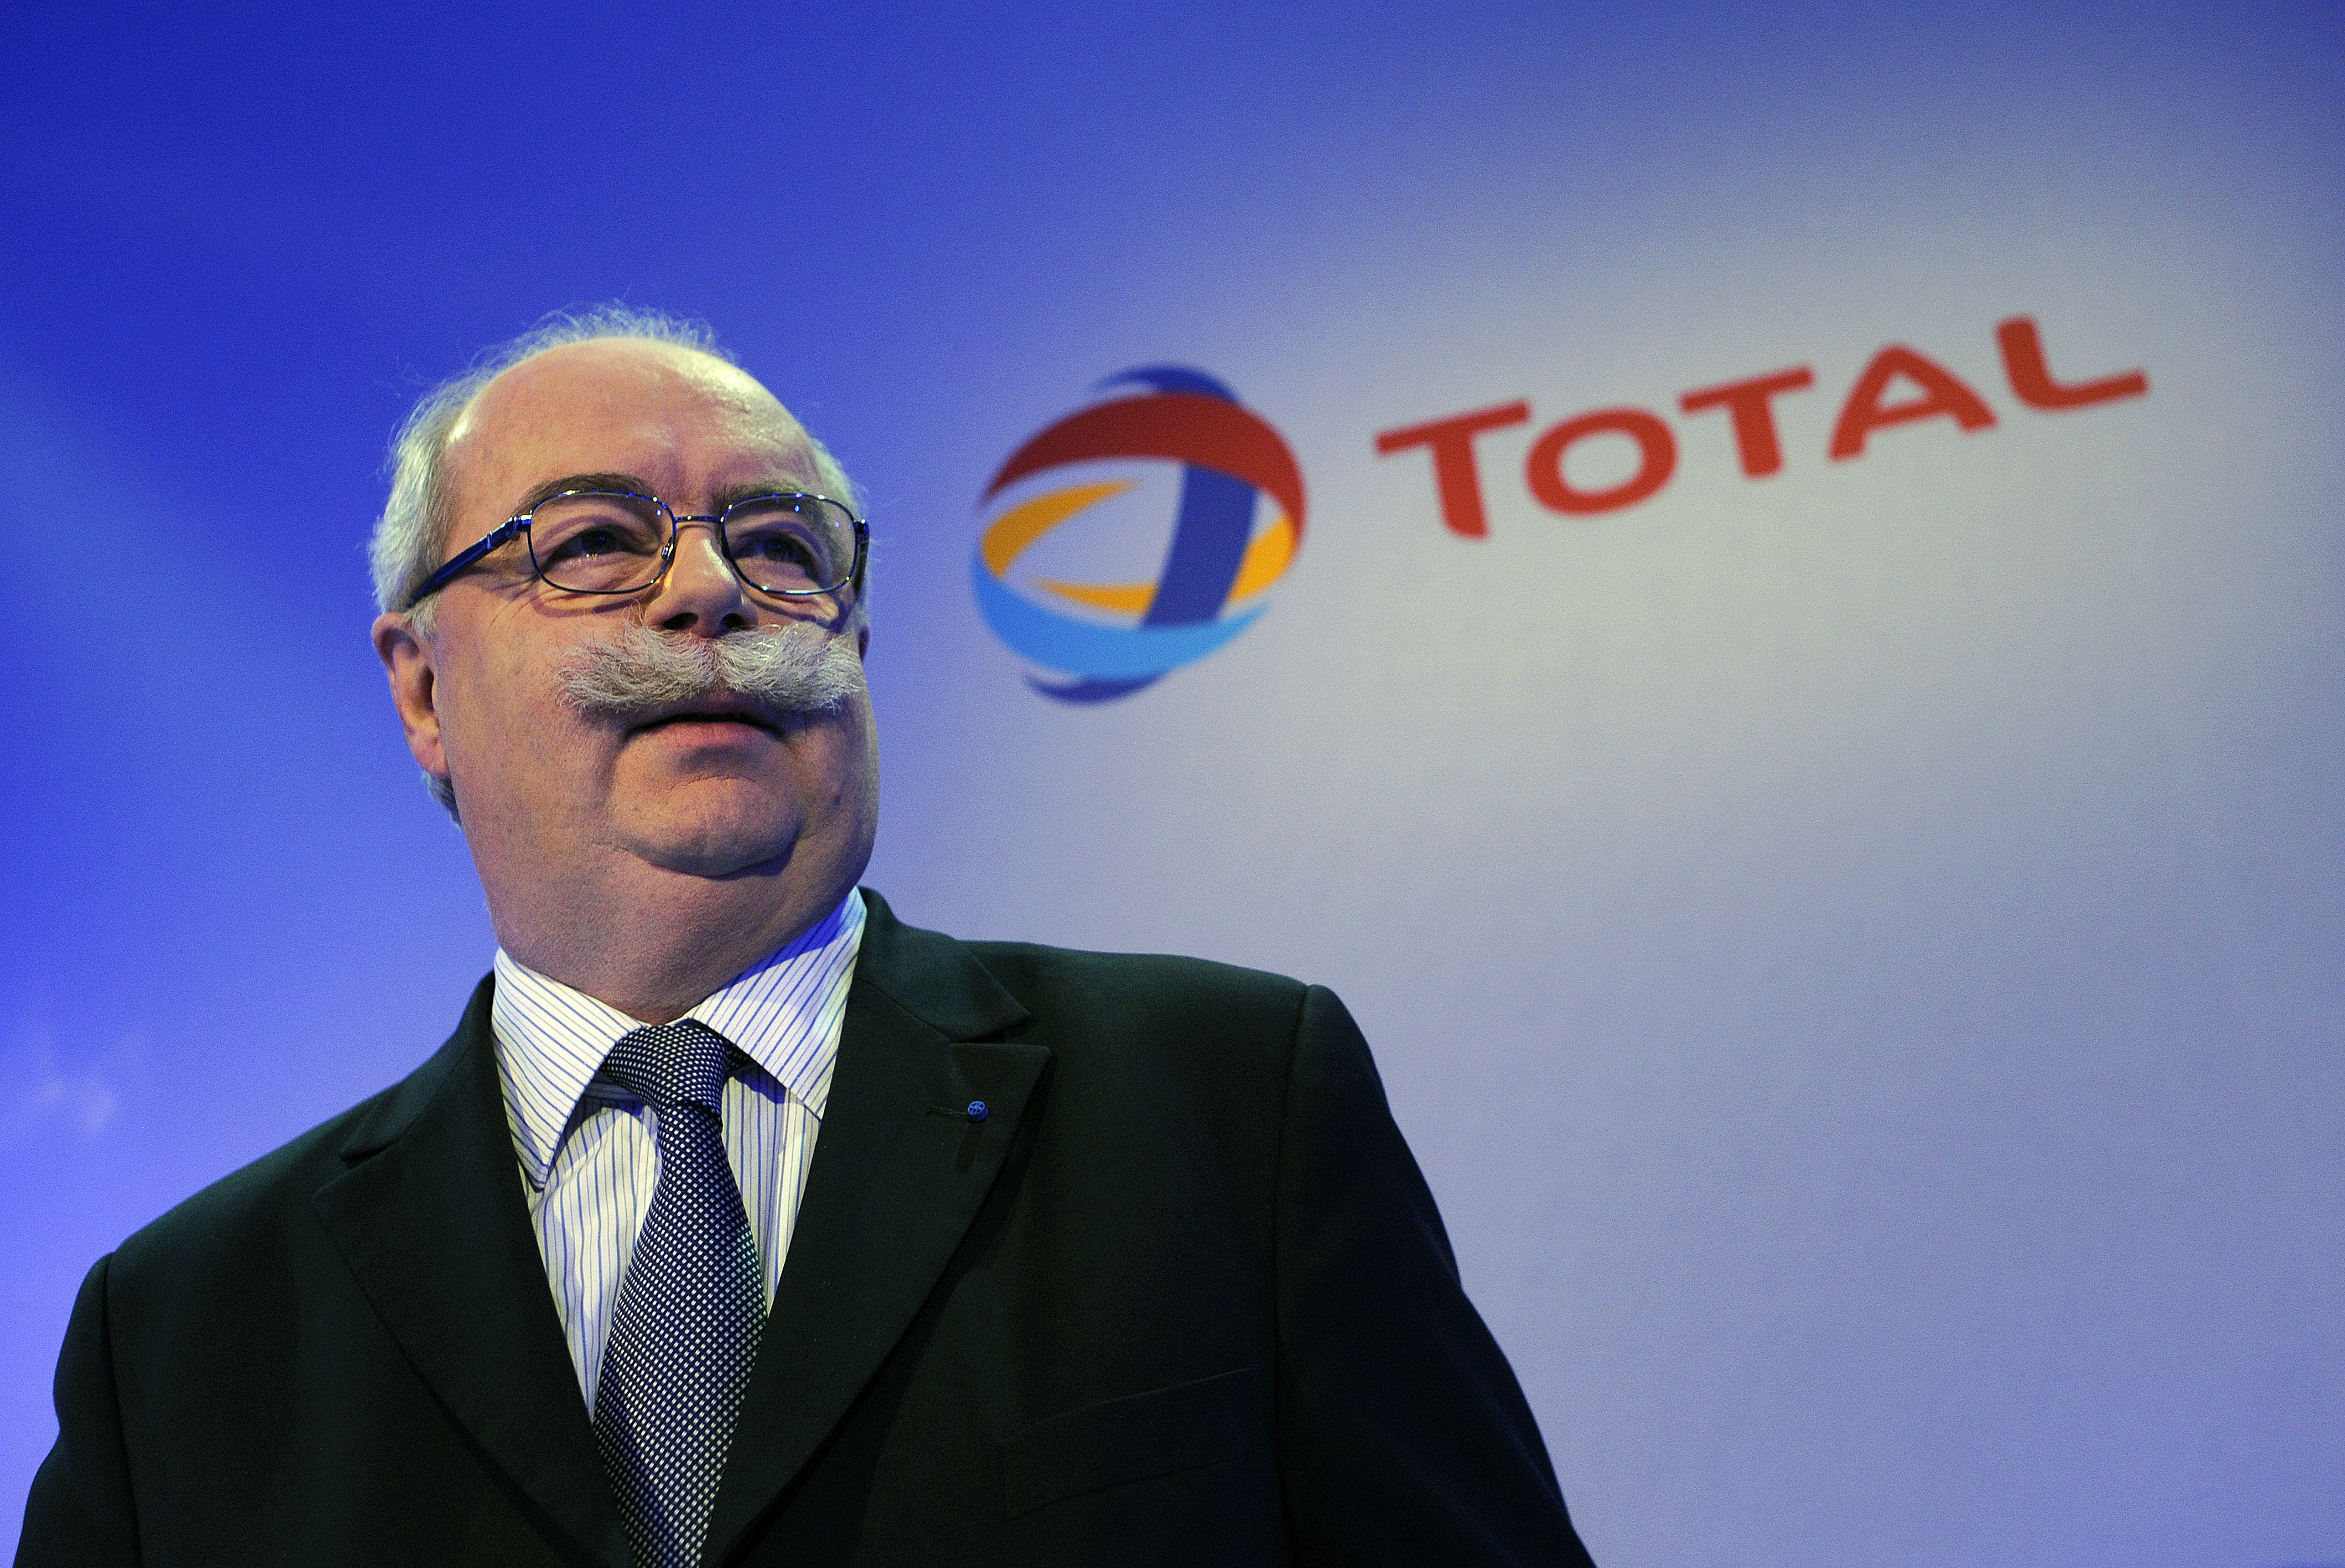 Total CEO Christophe de Margerie Dies in Plane Crash